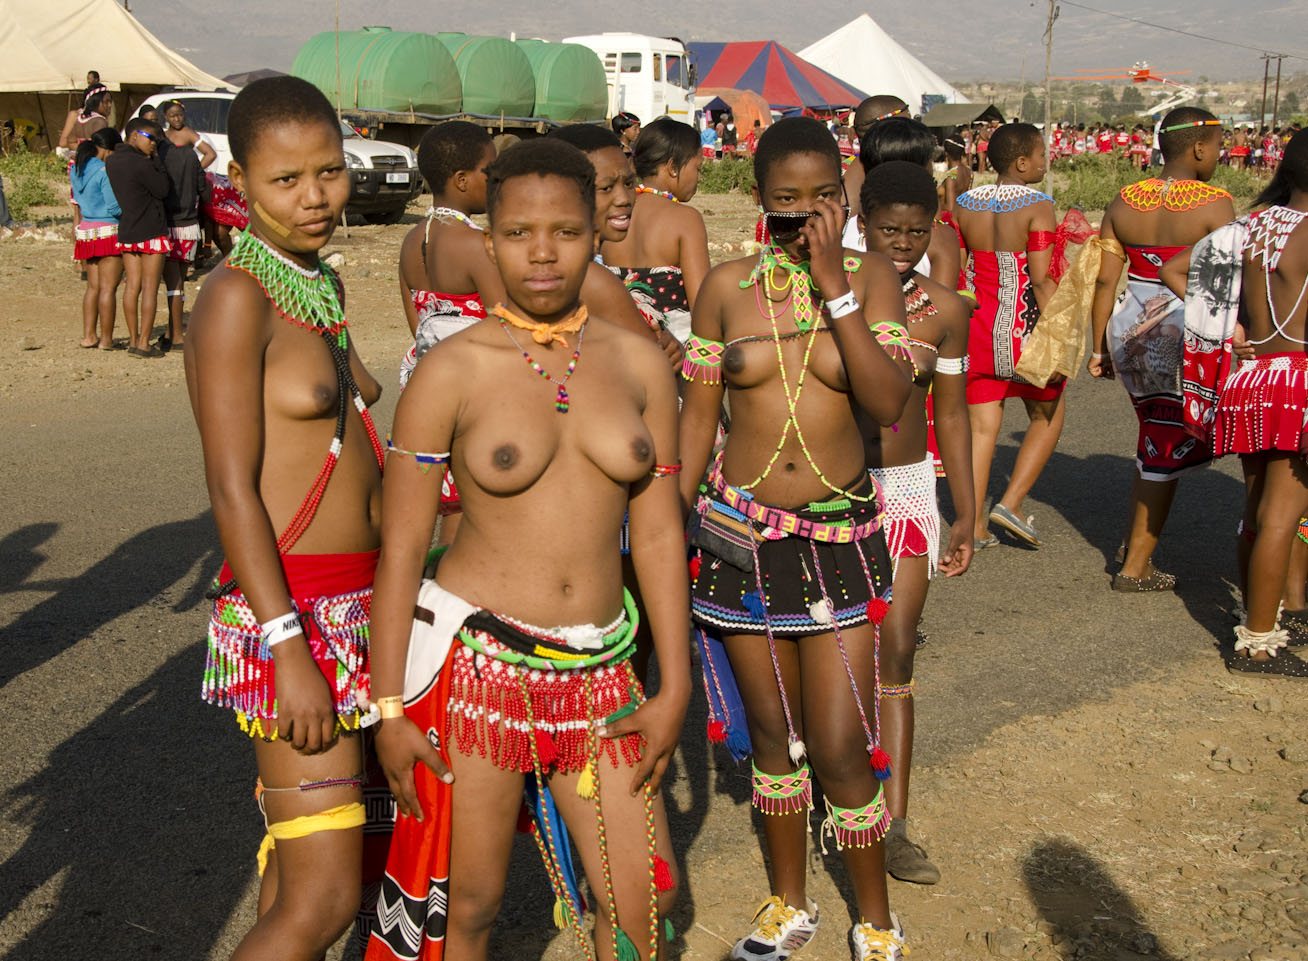 Uncensored zimbabwean nudity girls